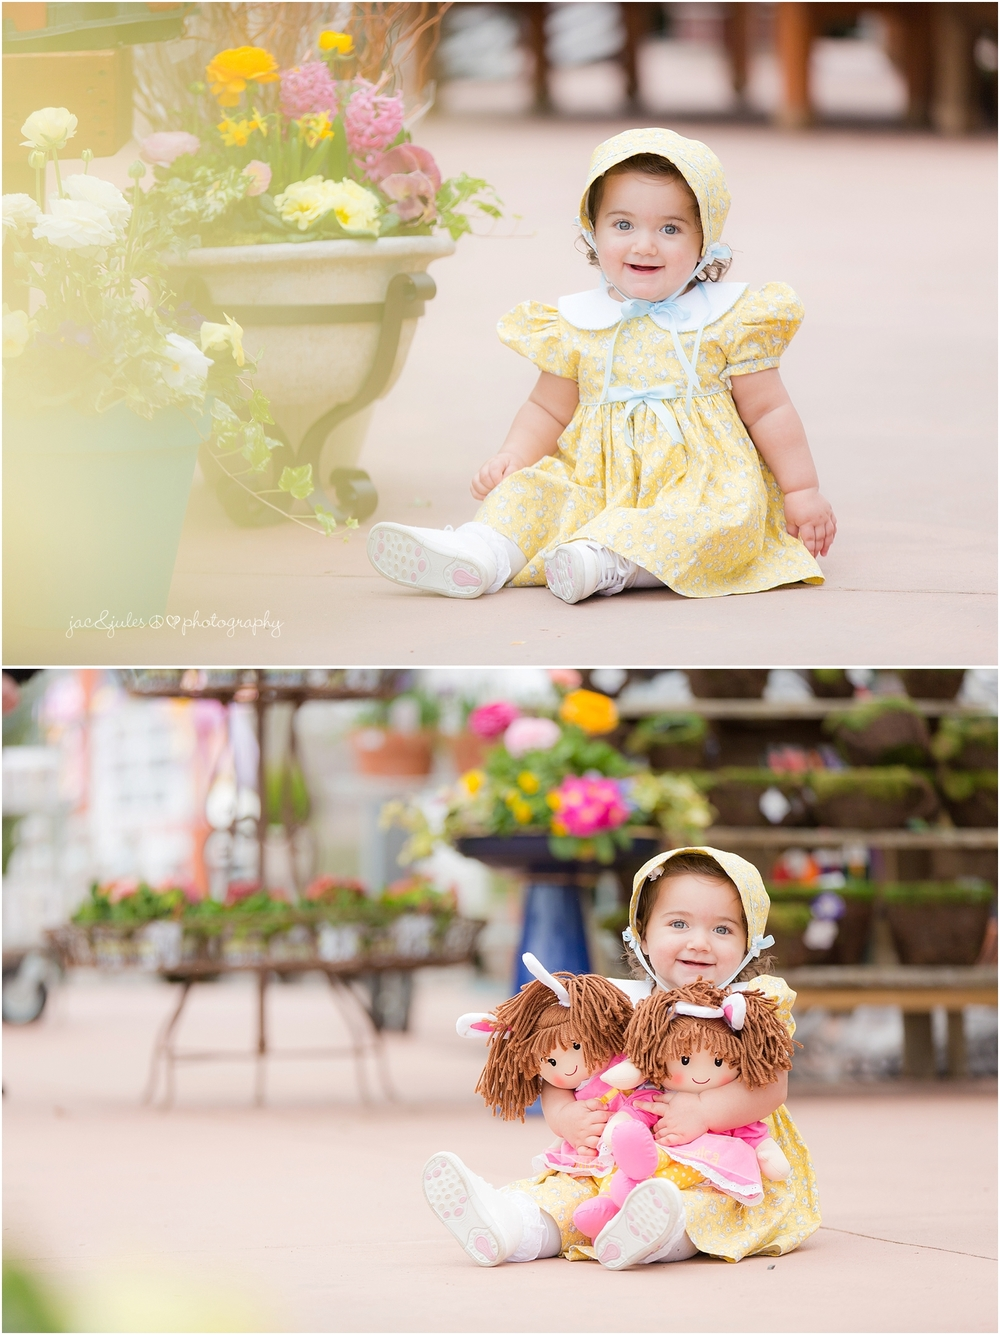 jacnjules photographs child's Easter photos at Barlows in Sea Girt, NJ